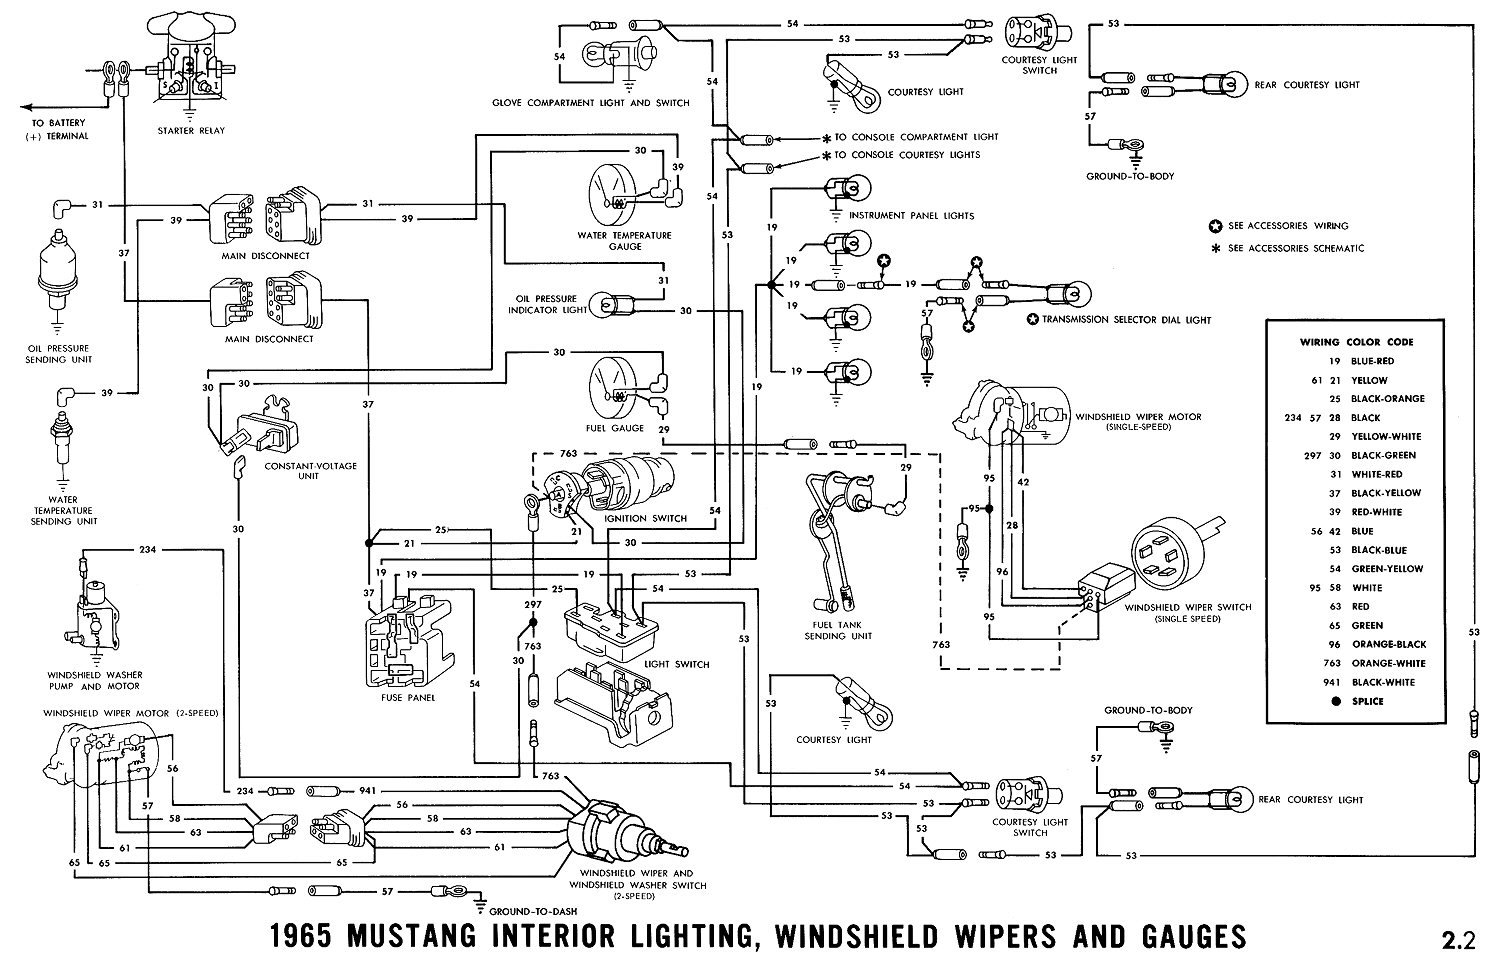 354697d1402370433 1970 mustang installing new radiator no temperature sensor interior lighting gauges wiring diagram for 1959 ford f100 the wiring diagram 1991 ford mustang wiring diagram at edmiracle.co